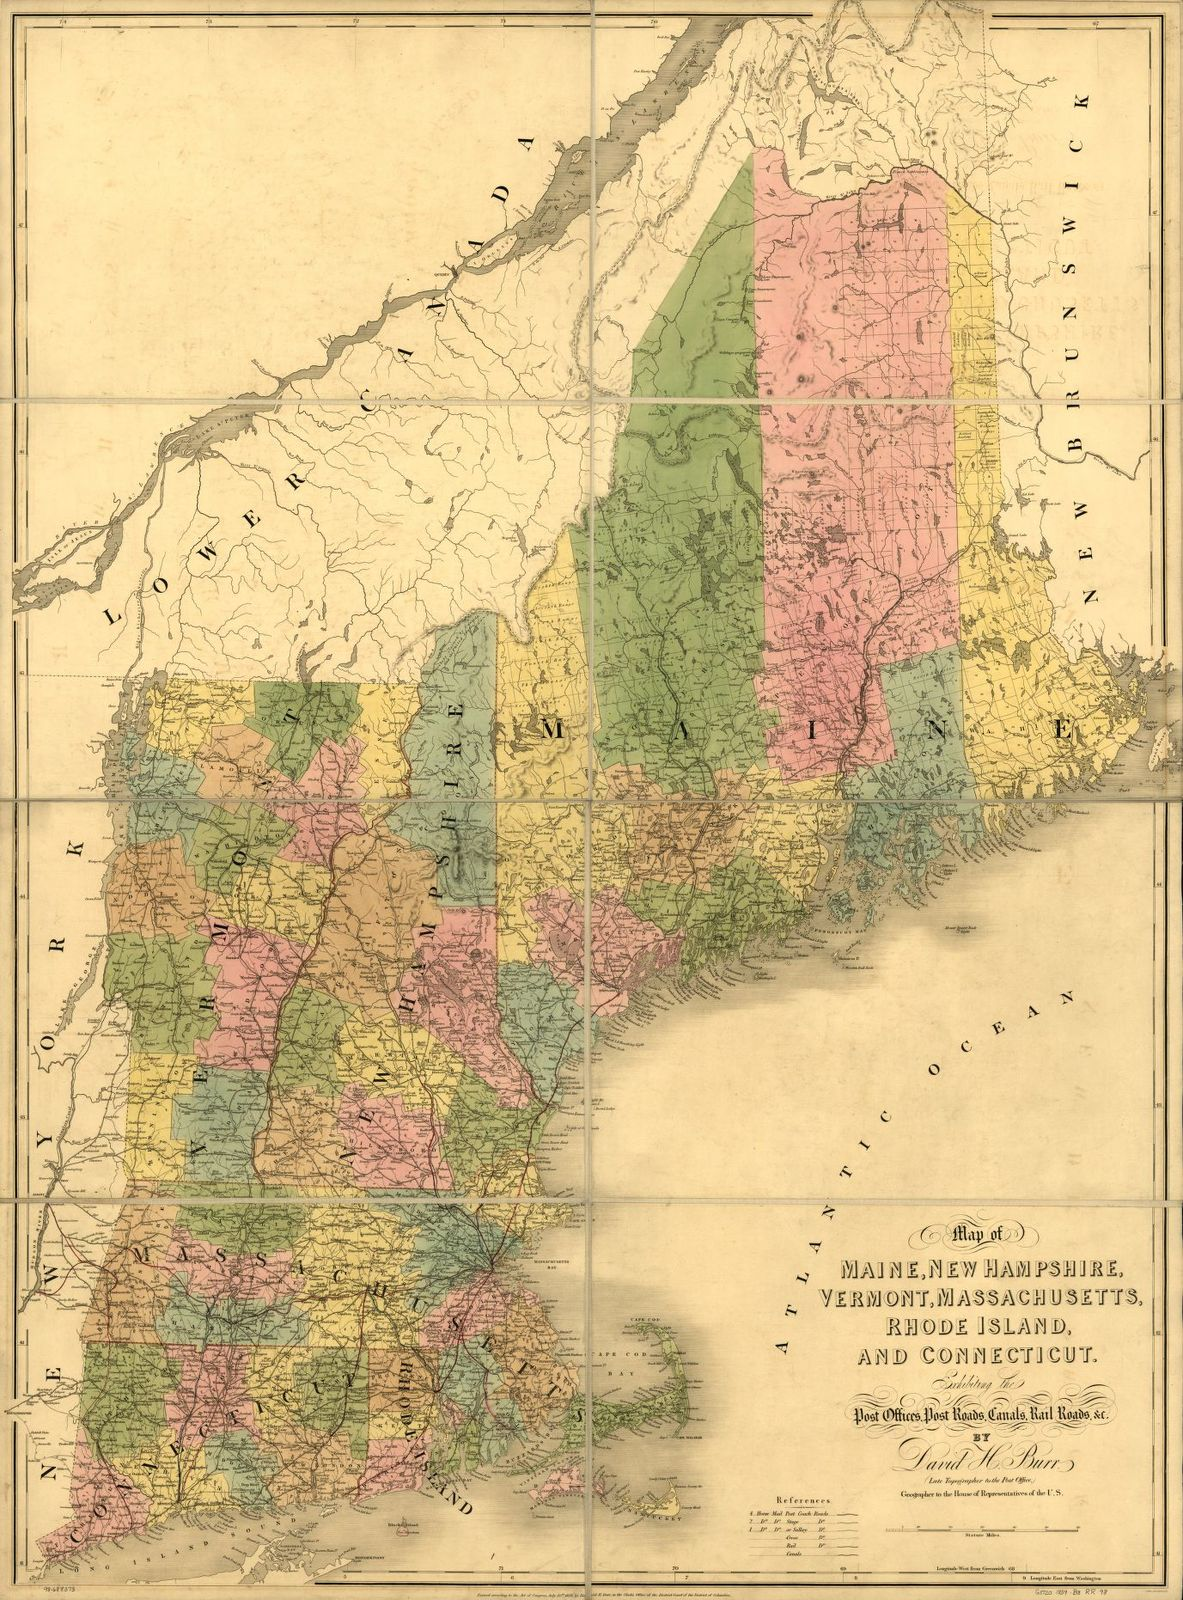 Map of Maine, New Hampshire, Vermont, Massachusetts, Rhode Island, and Connecticut exhibiting the post offices, post roads, canals, rail roads, &c.; by David H. Burr (late topographer to the Post Office,) Geographer to the House of Representatives of the U.S.